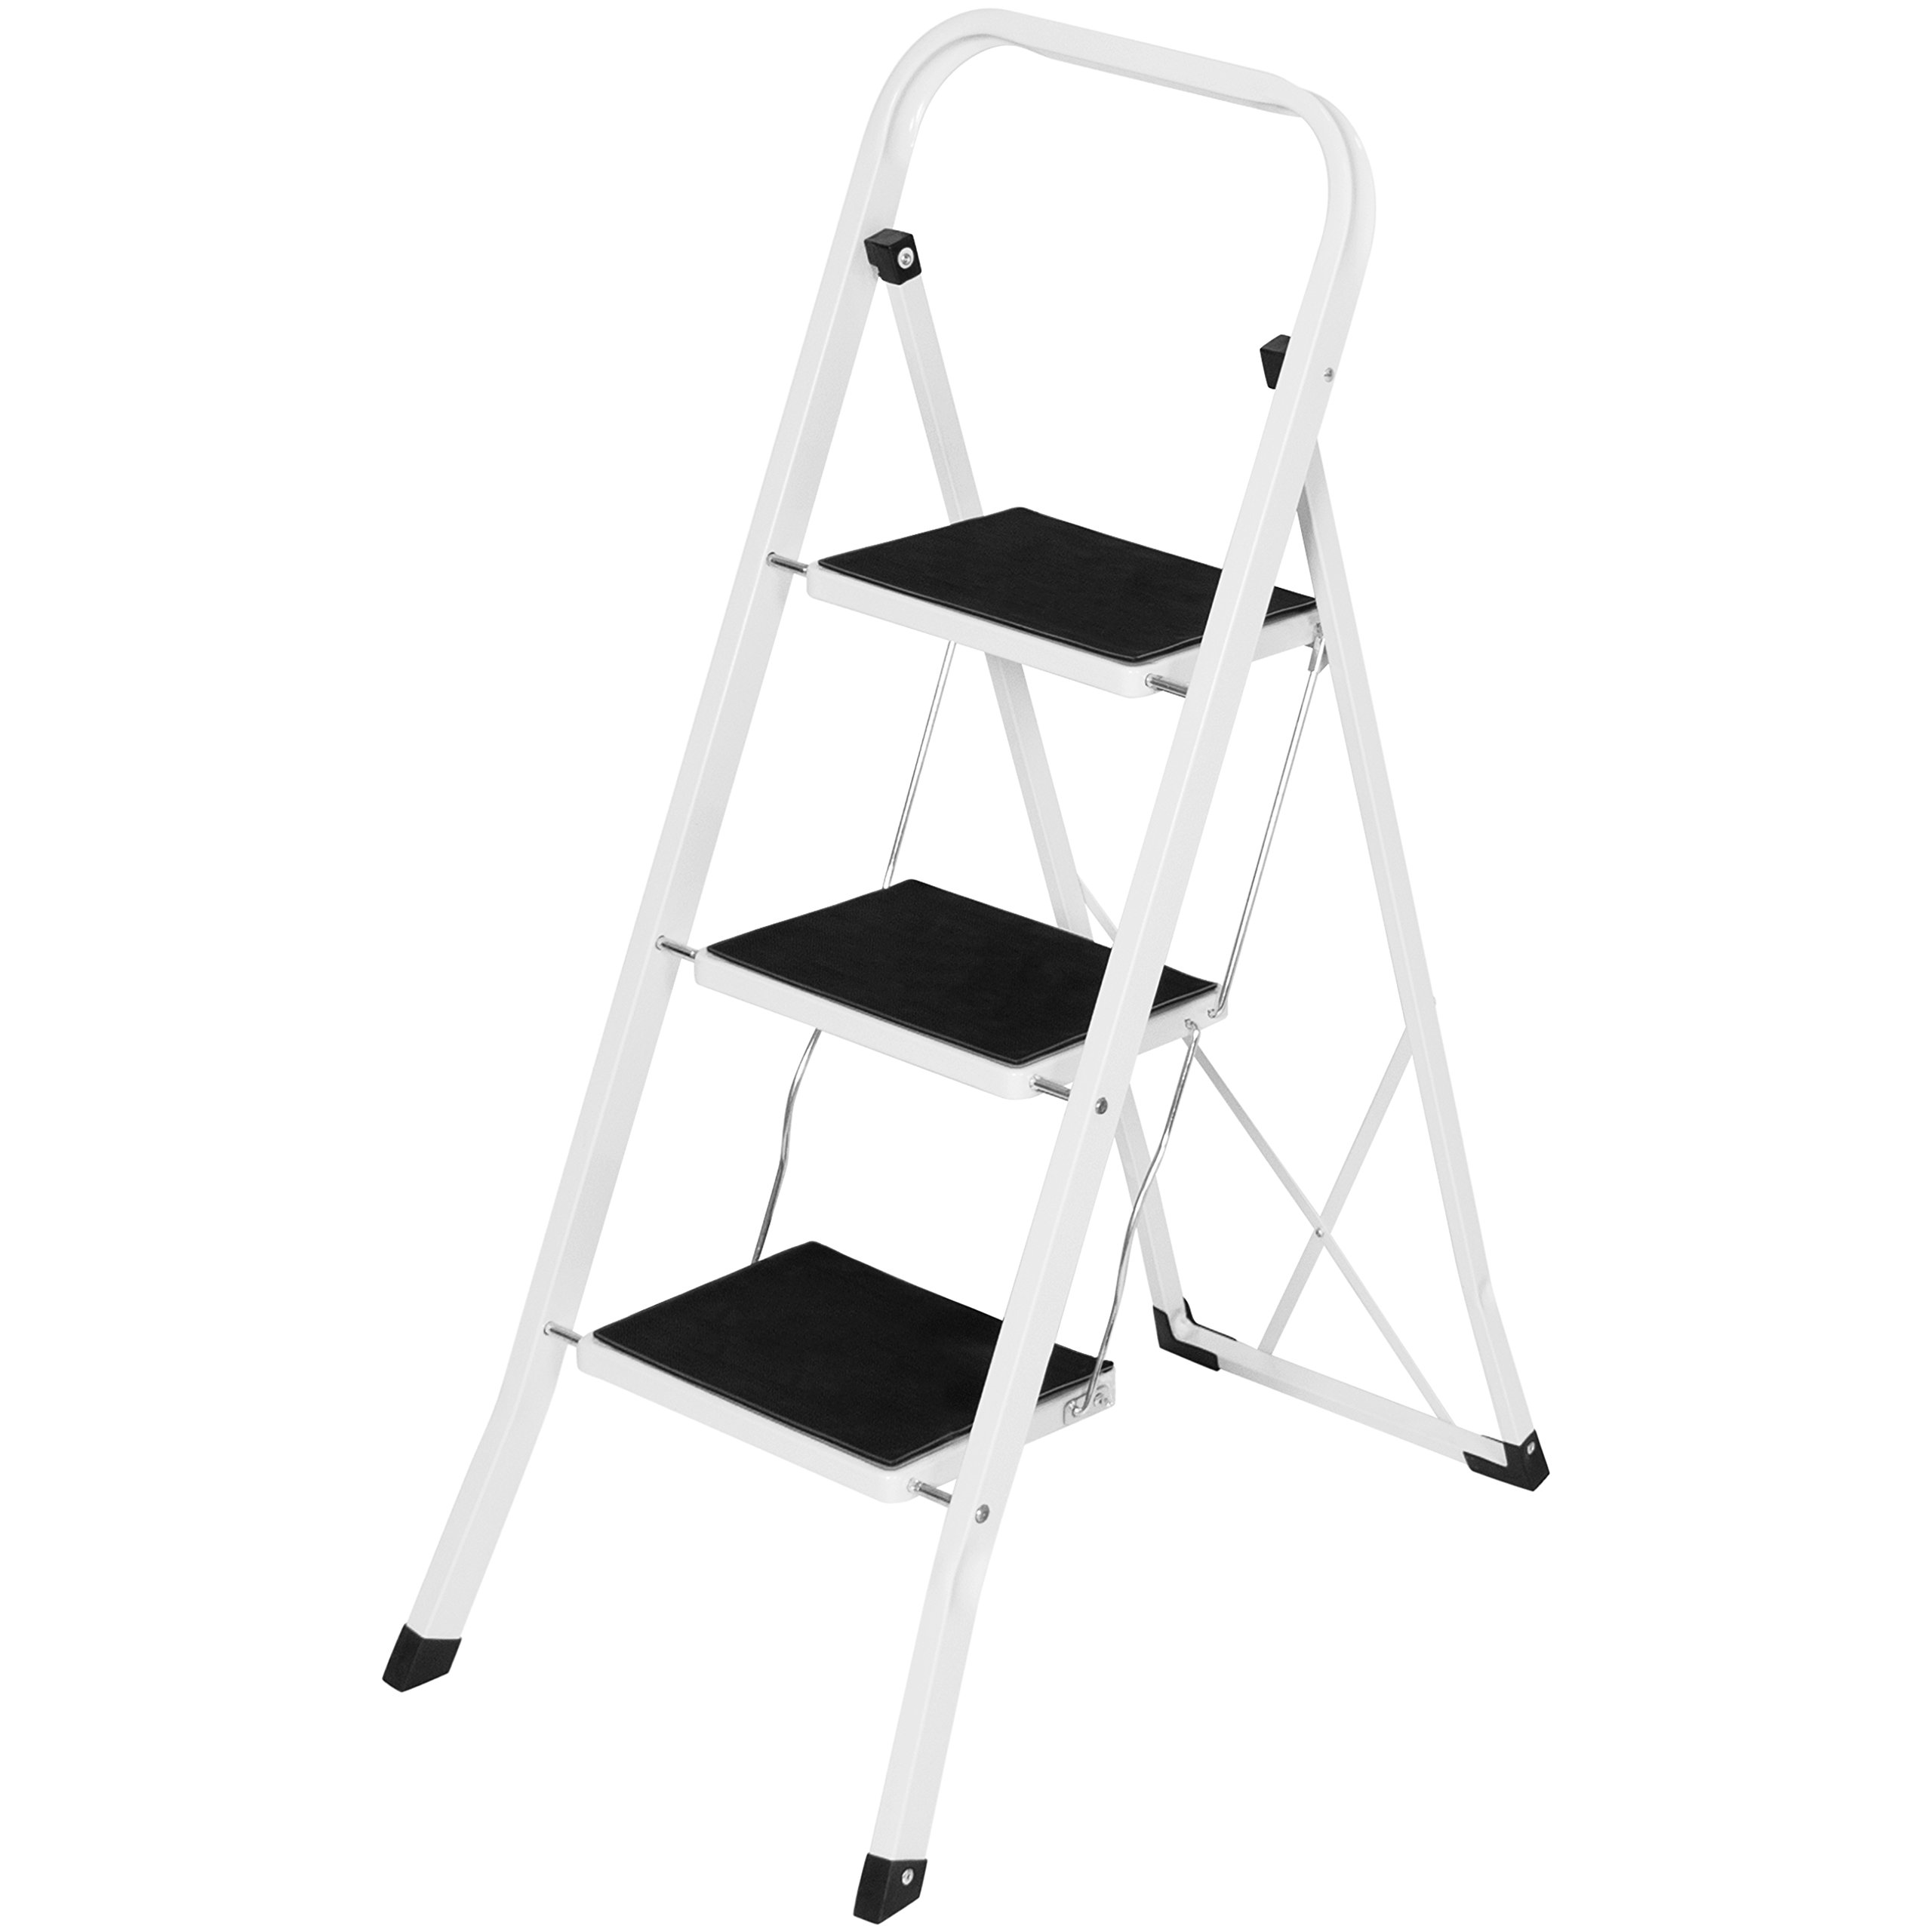 Best Choice Products Portable Folding 3 Step Ladder Steel Stool 300lb Heavy Duty Lightweight